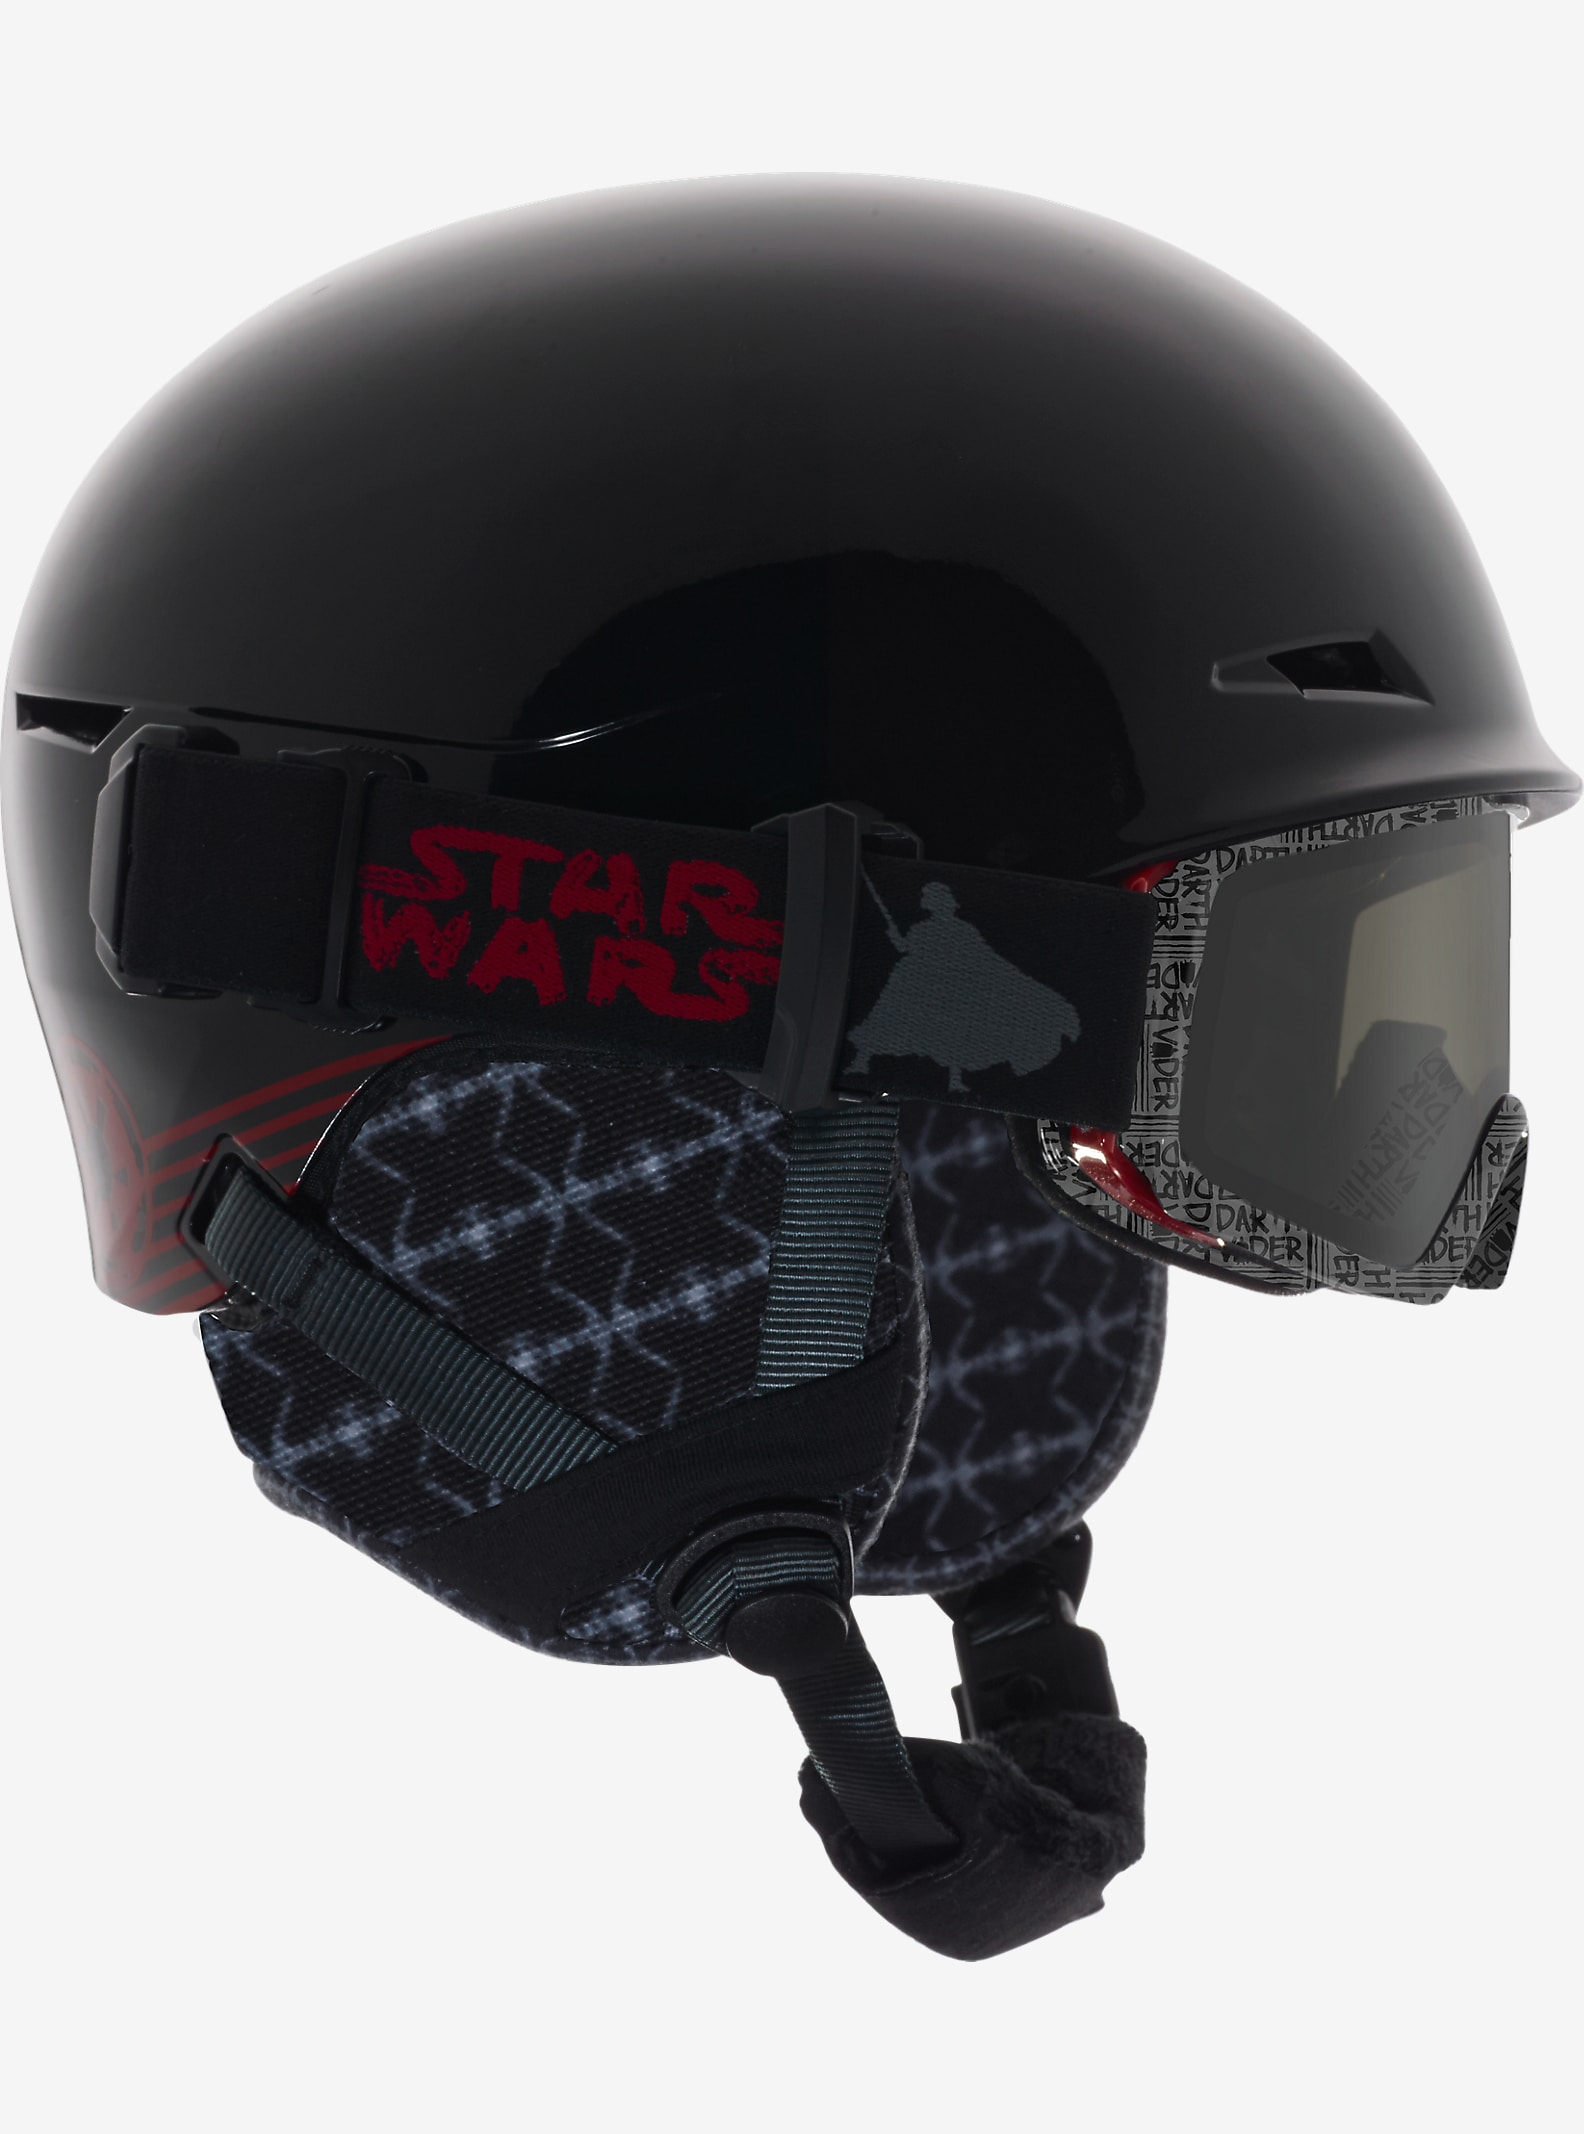 Star Wars anon. Define Helmet shown in Darth Vader